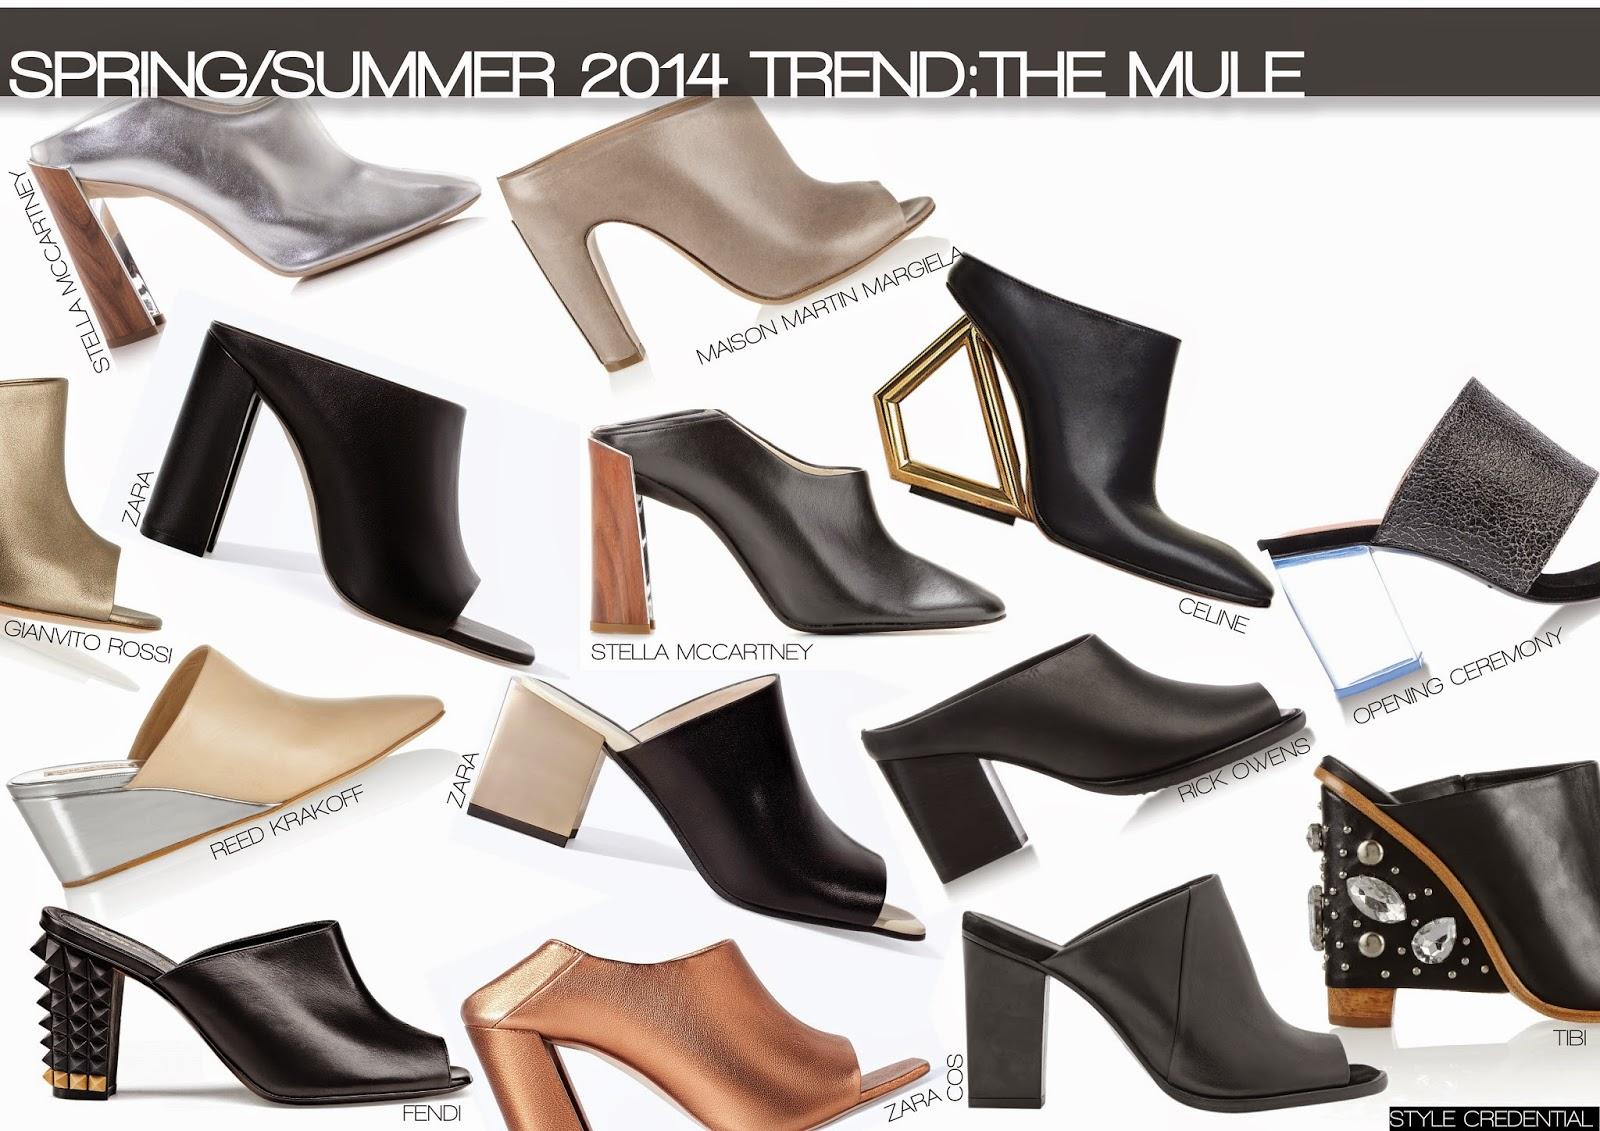 Spring/Summer 2014 Shoe Trend: The Mule